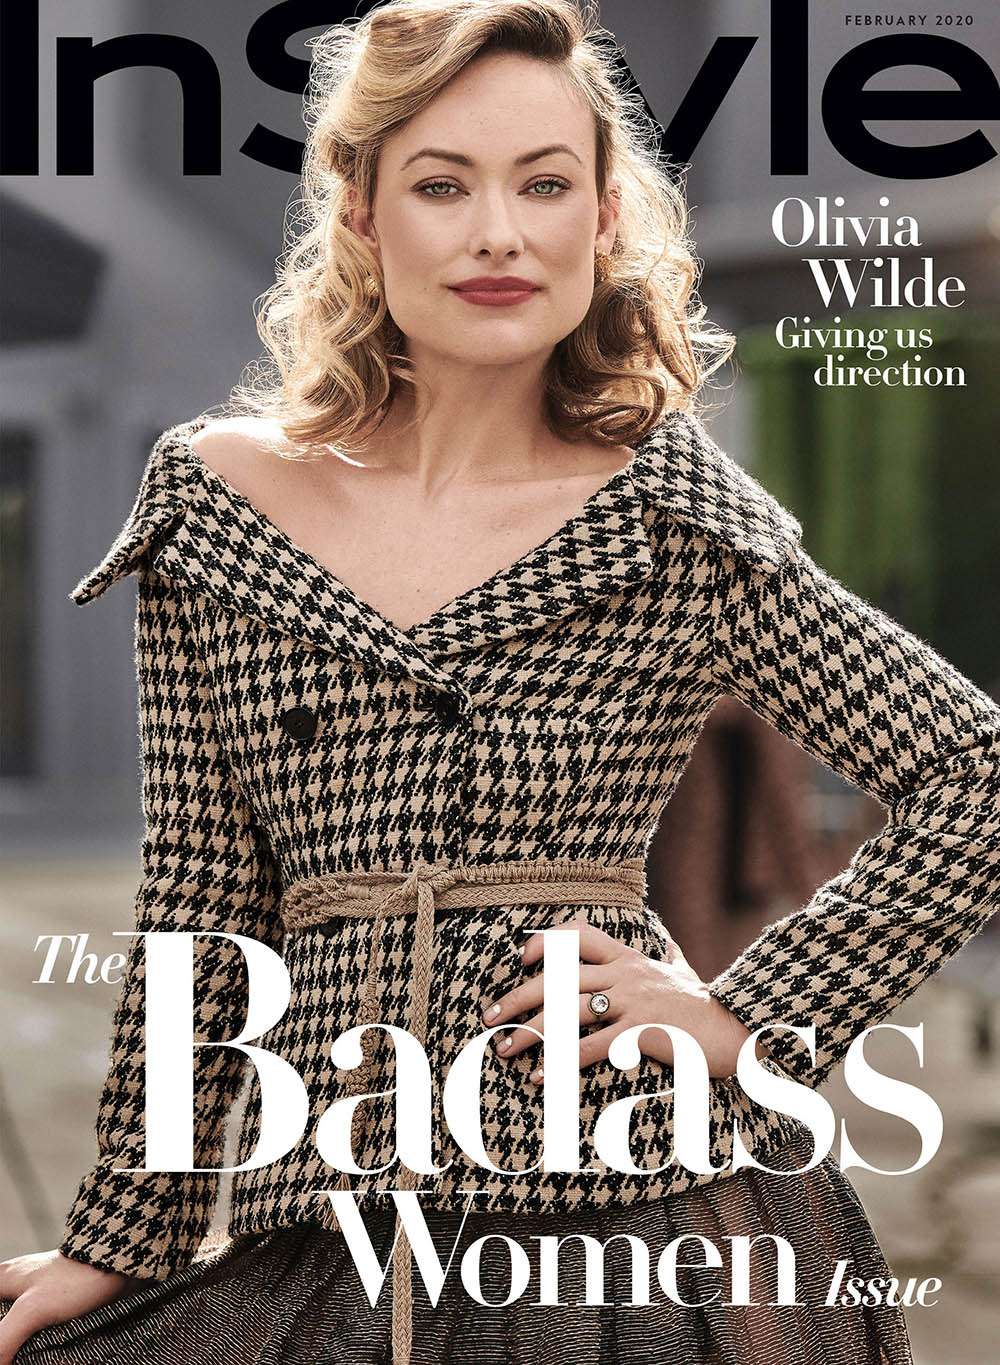 Olivia Wilde covers InStyle US February 2020 by Pamela Hanson